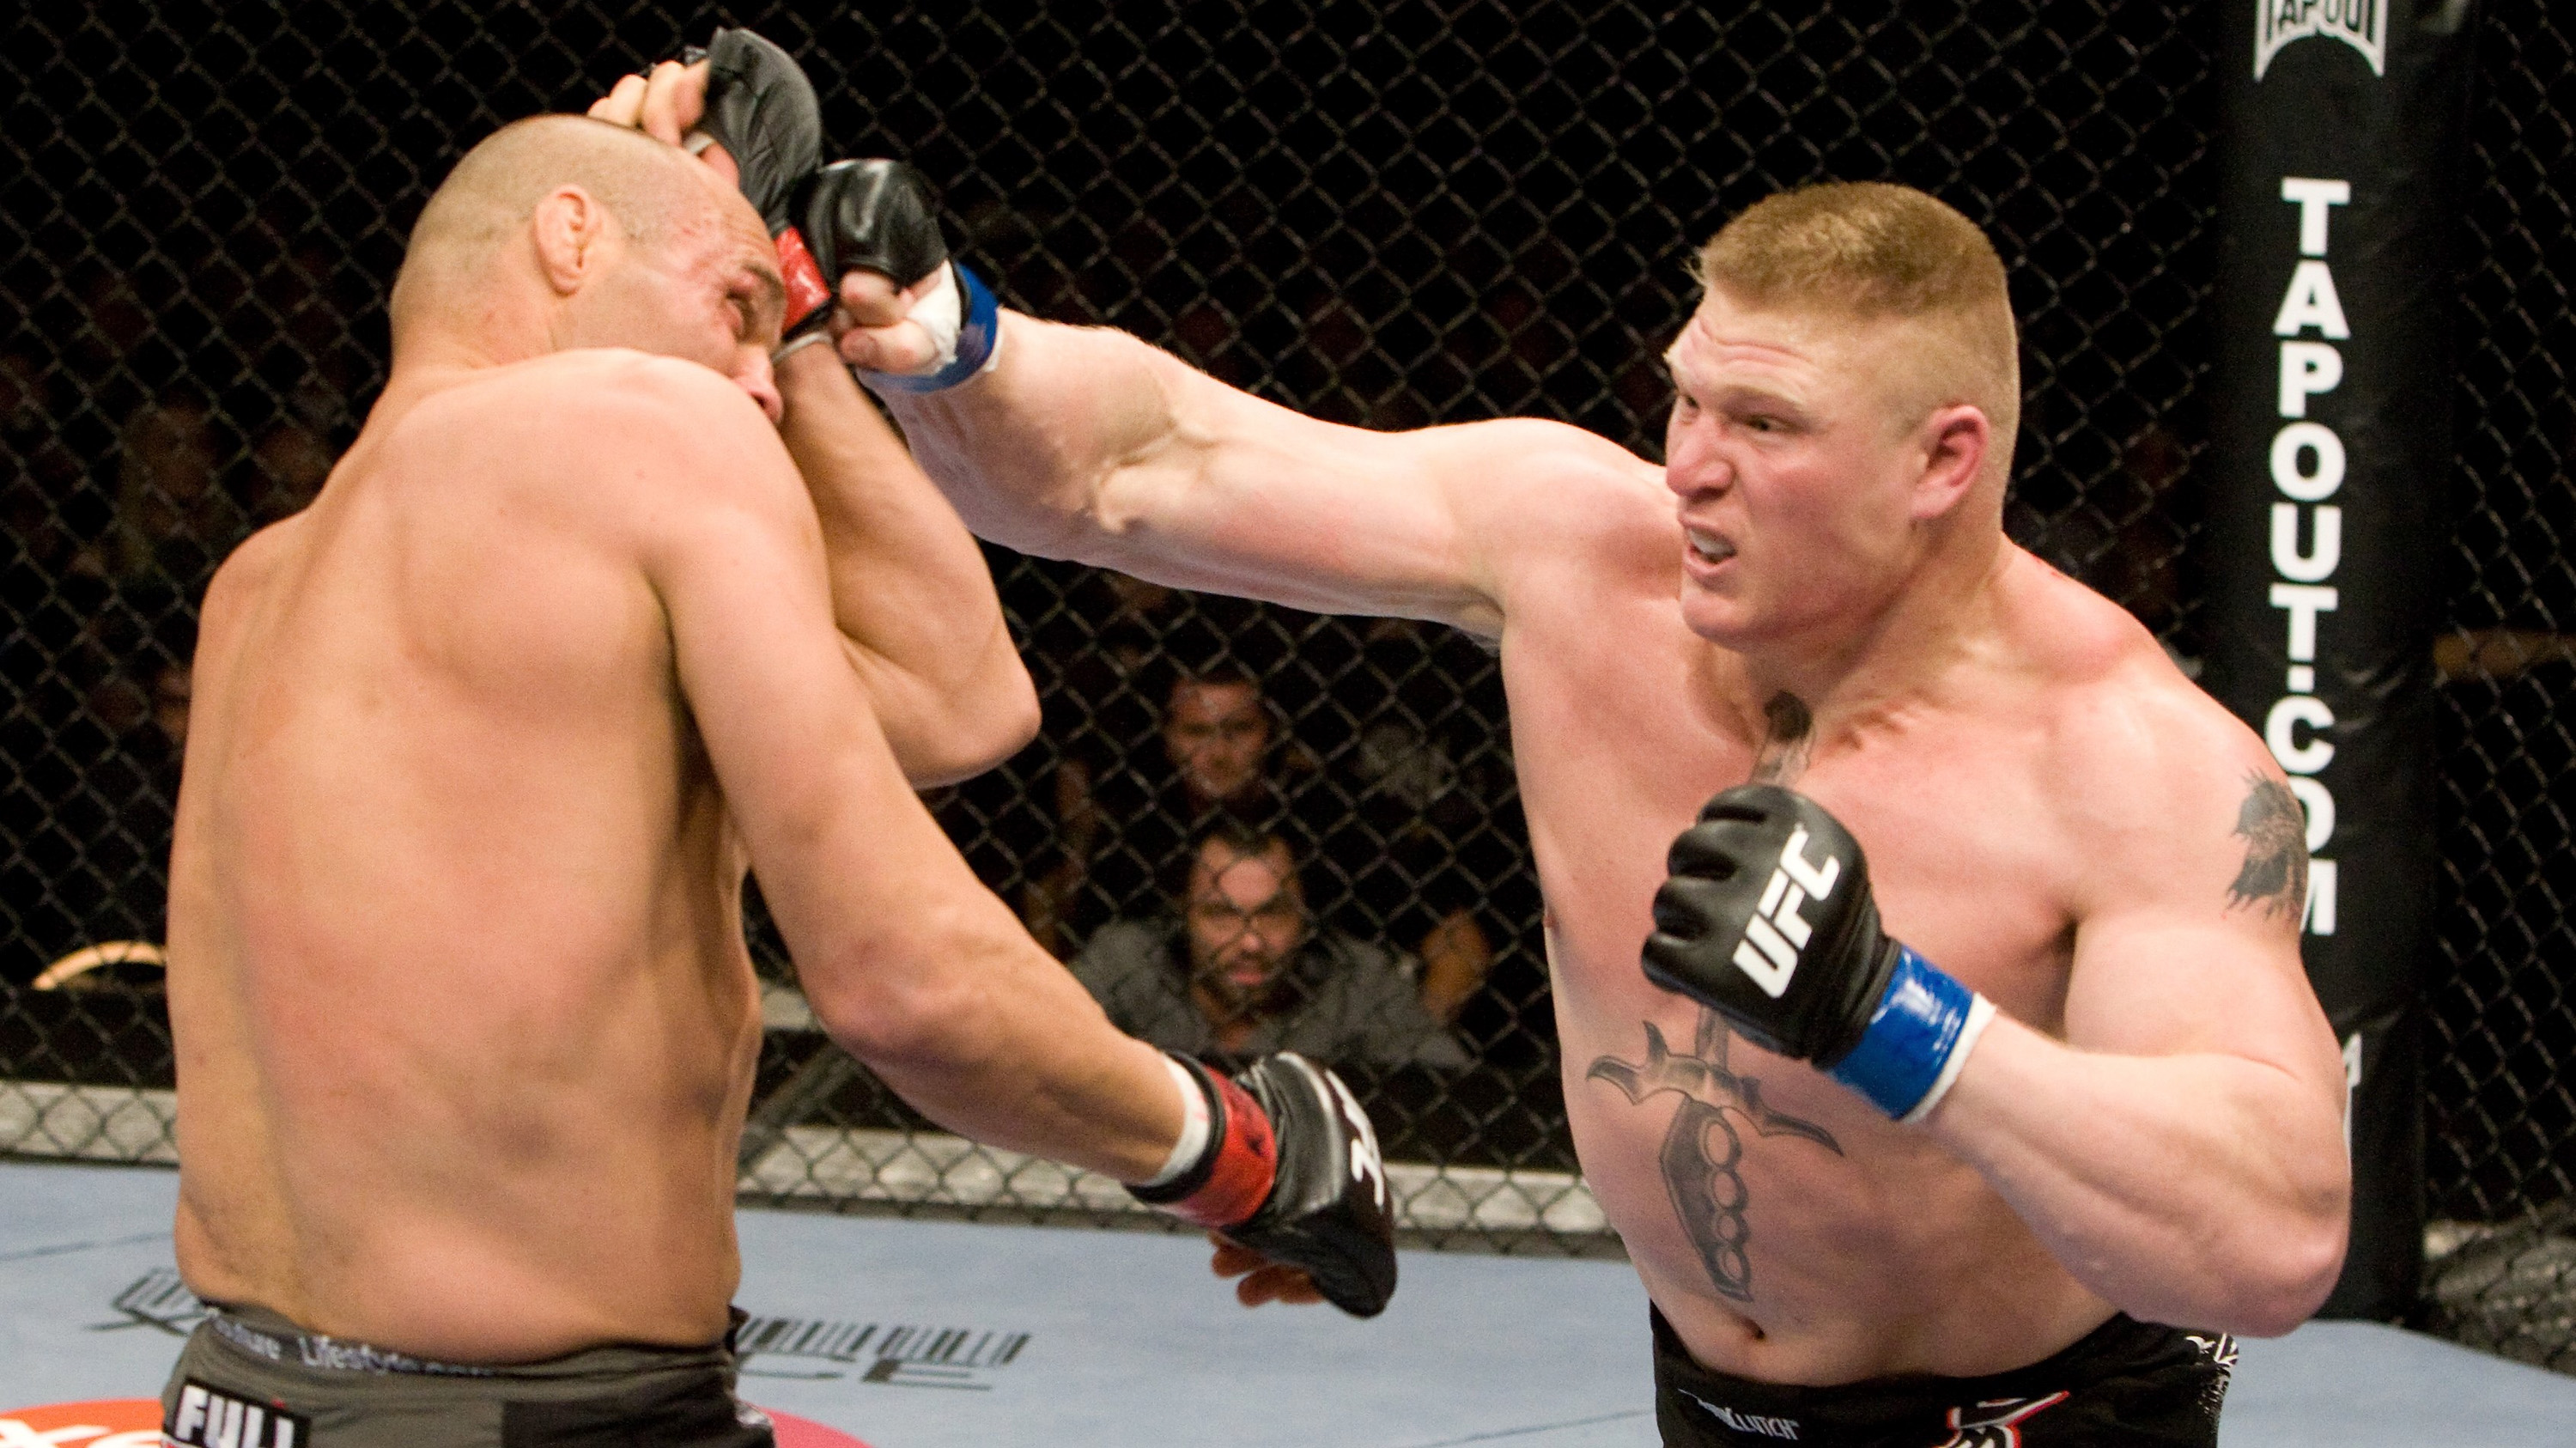 Ufc 100 brock lesnar asshole riding